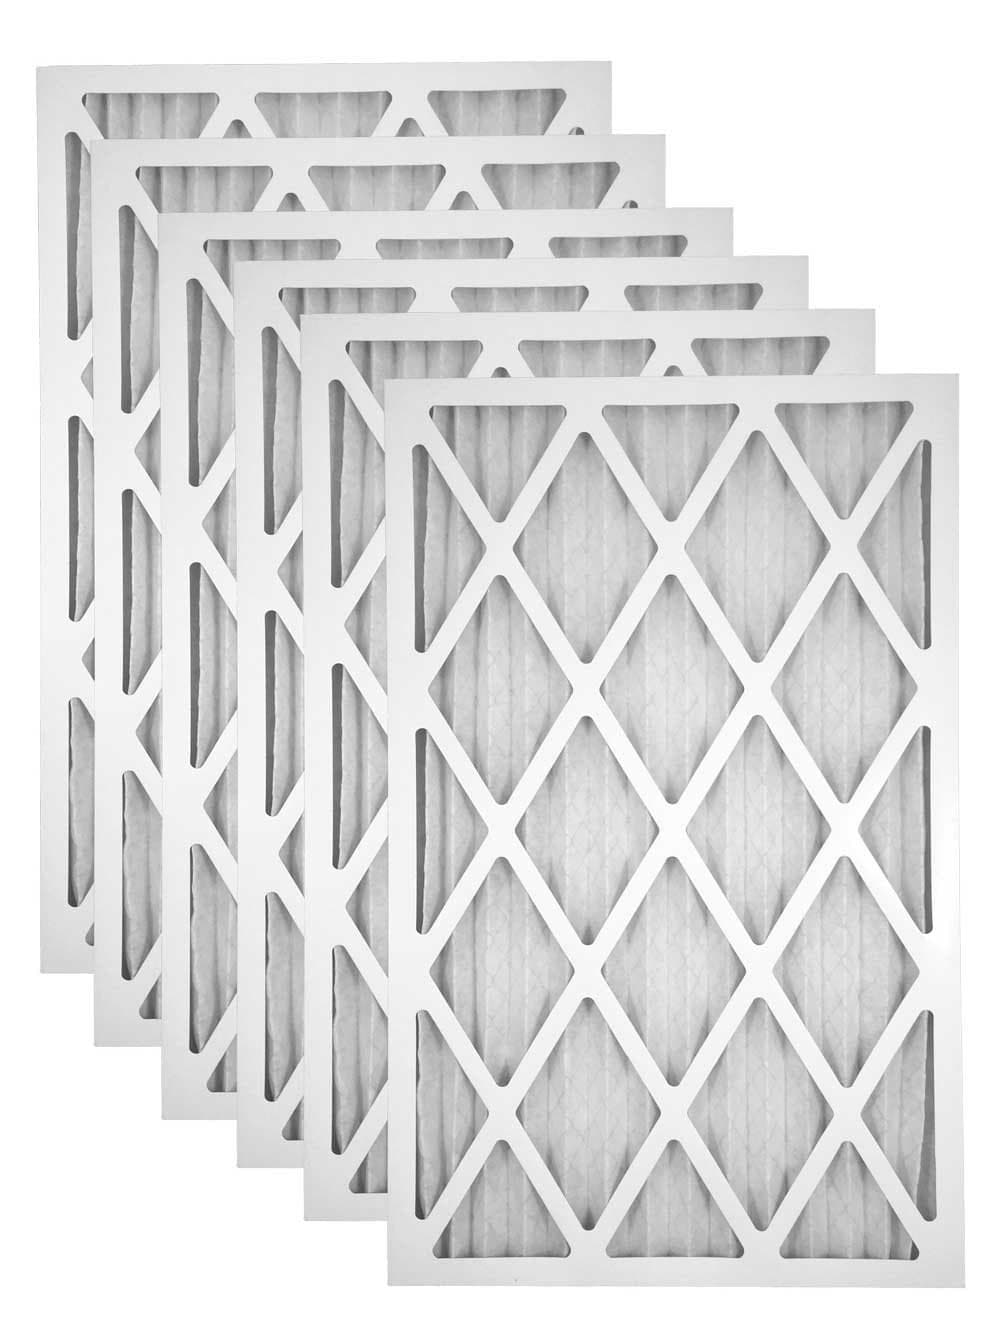 21.5x23.25x1 Merv 13 Pleated AC Furnace Filter - Case of 6